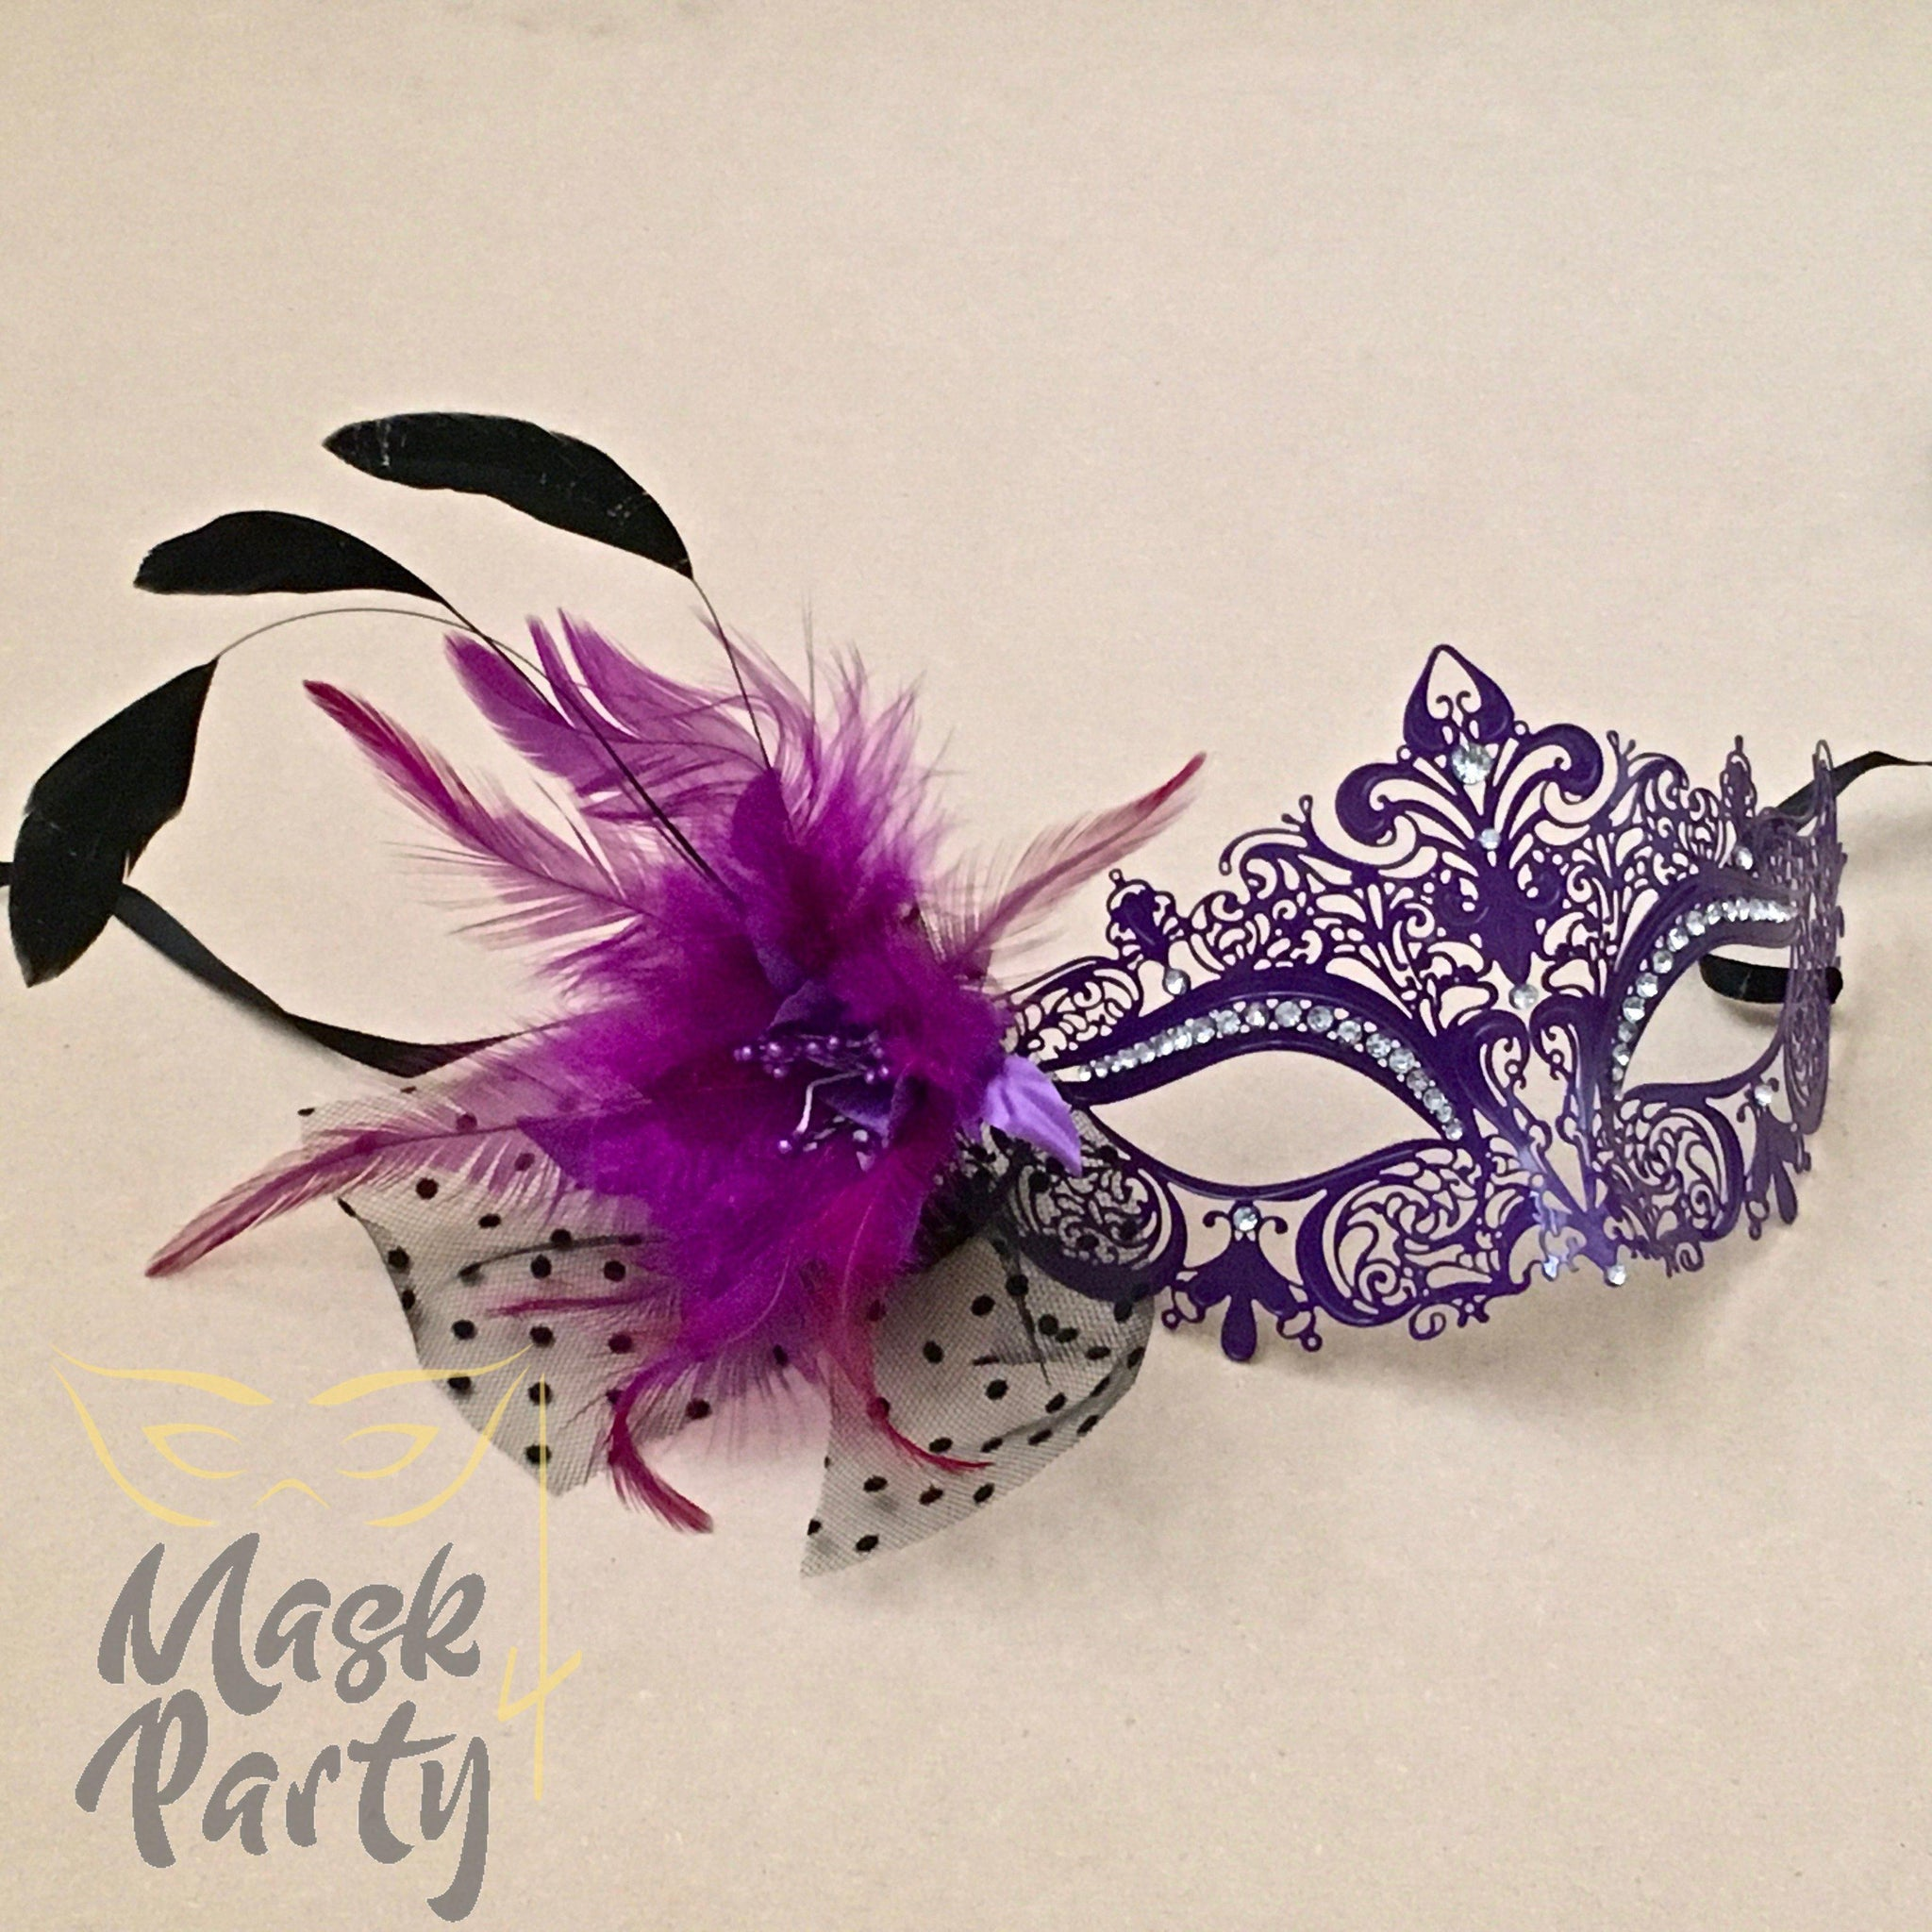 NEW - MASQUERADE MASK - FILIGREE METAL & FEATHER - PURPLE - Mask4Party